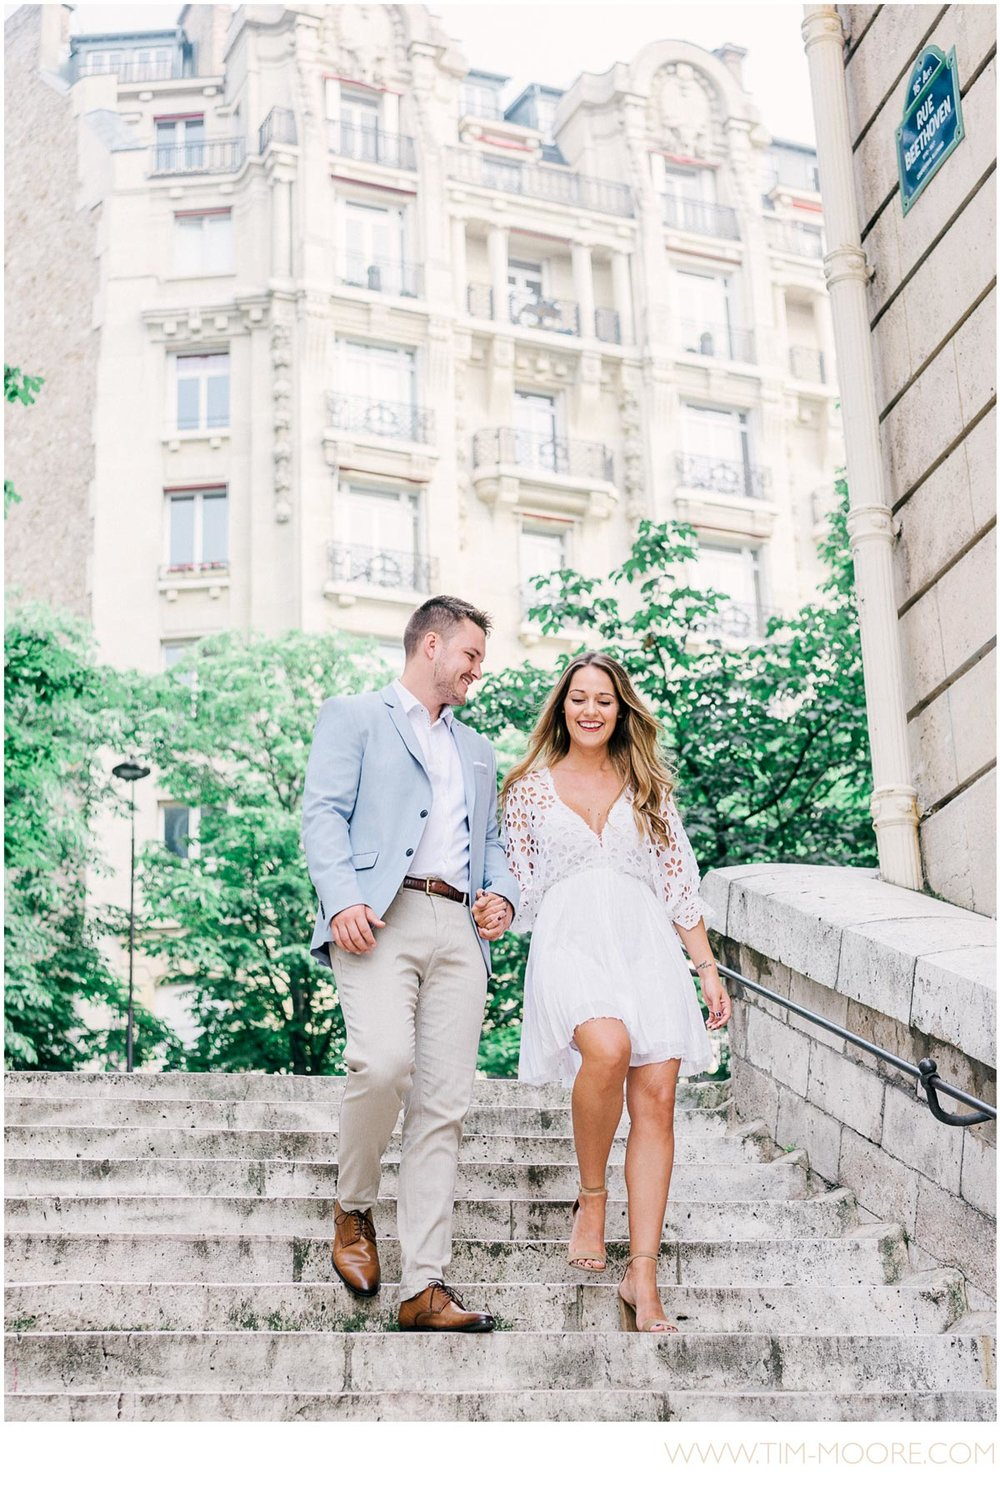 Paris Engagement Photographer - Anna and Jonathan wandering in a typical parisian street